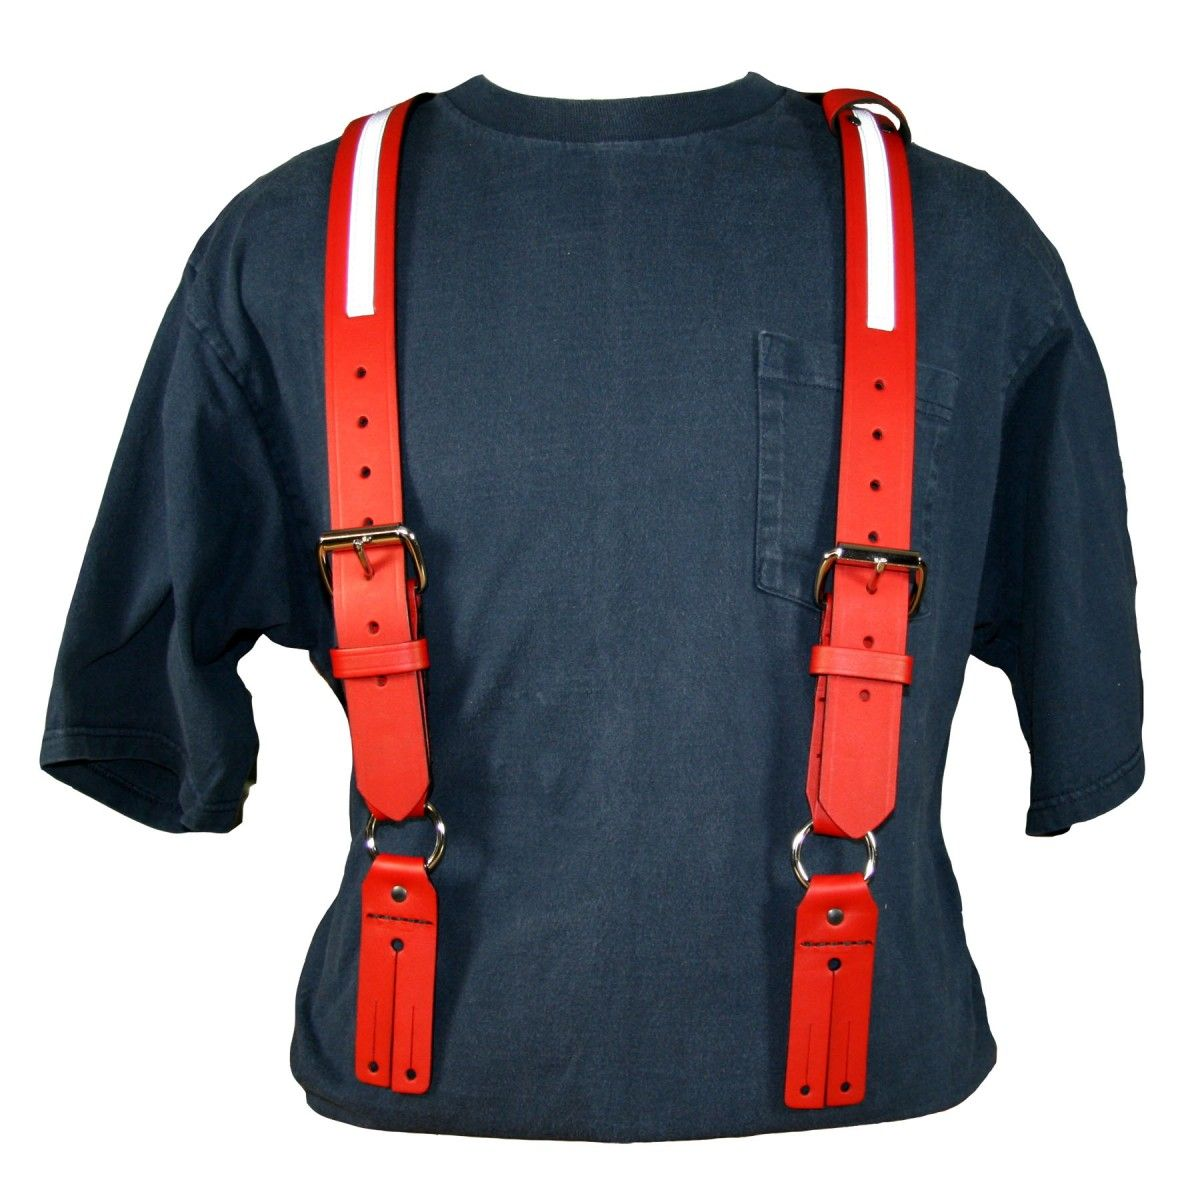 "Firefighter's Suspenders, Button Attachment, 1/2"" Reflective Ribbon"